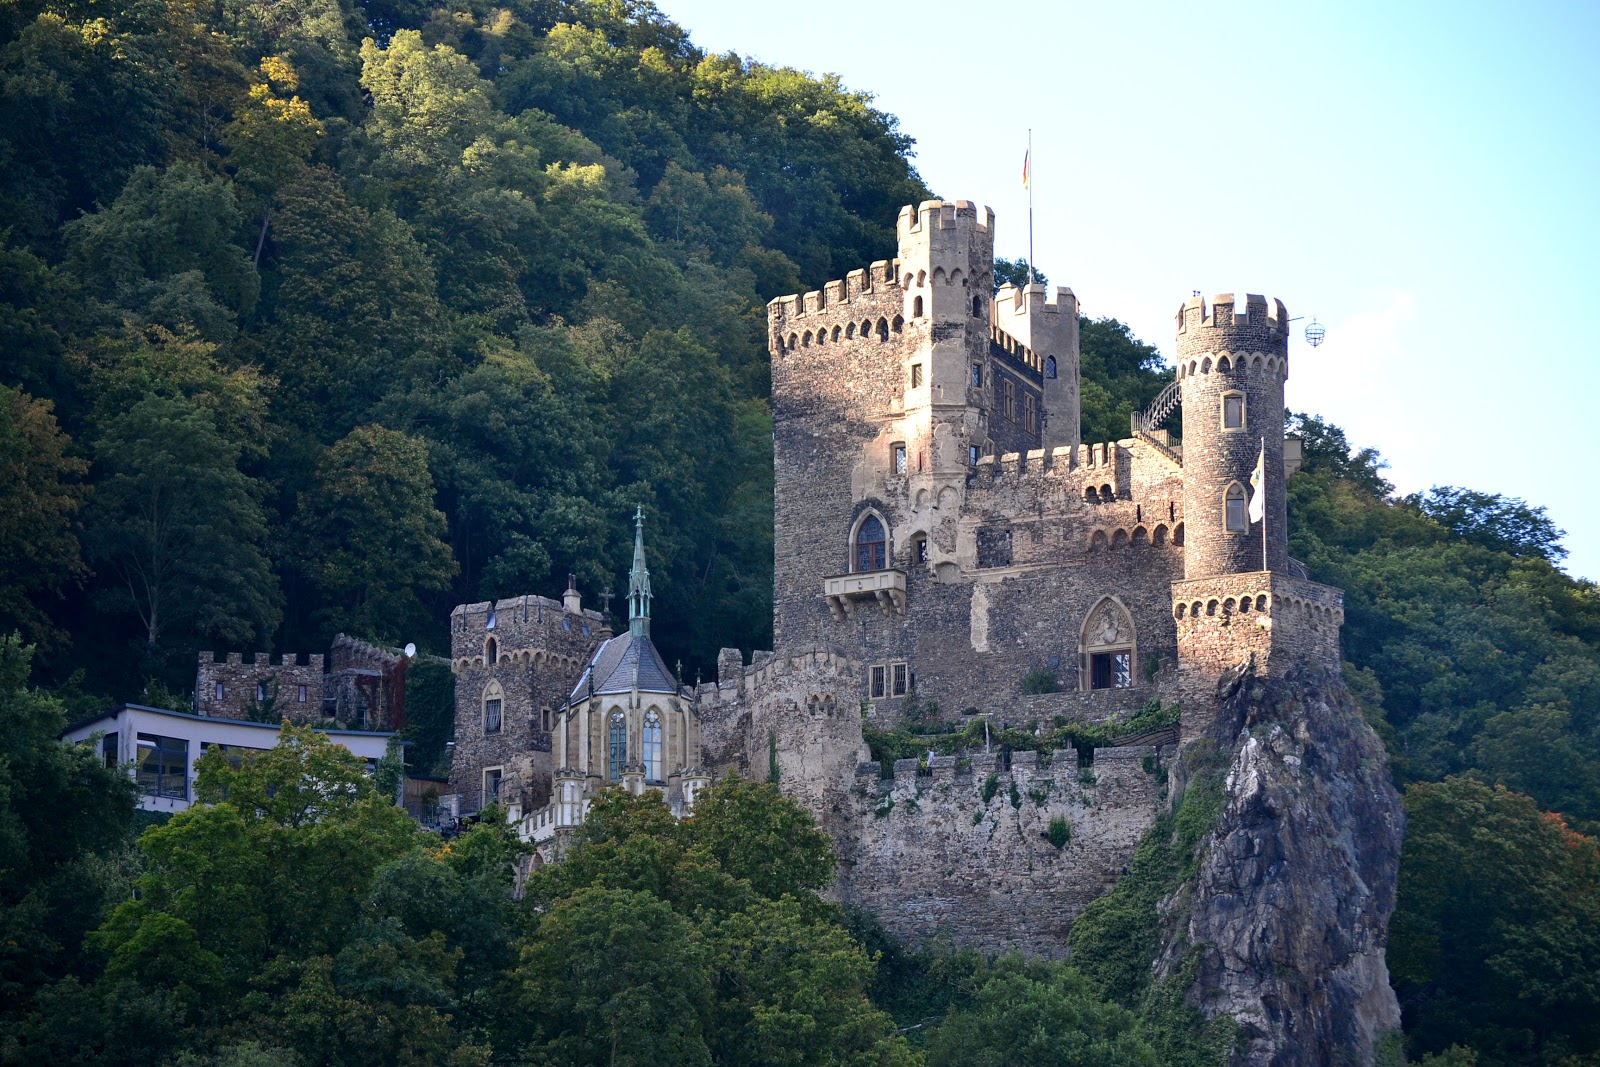 Rheinstein Castle was originally named Fatzberg by the Archbishops of Mainz when it was built in the 13th century.